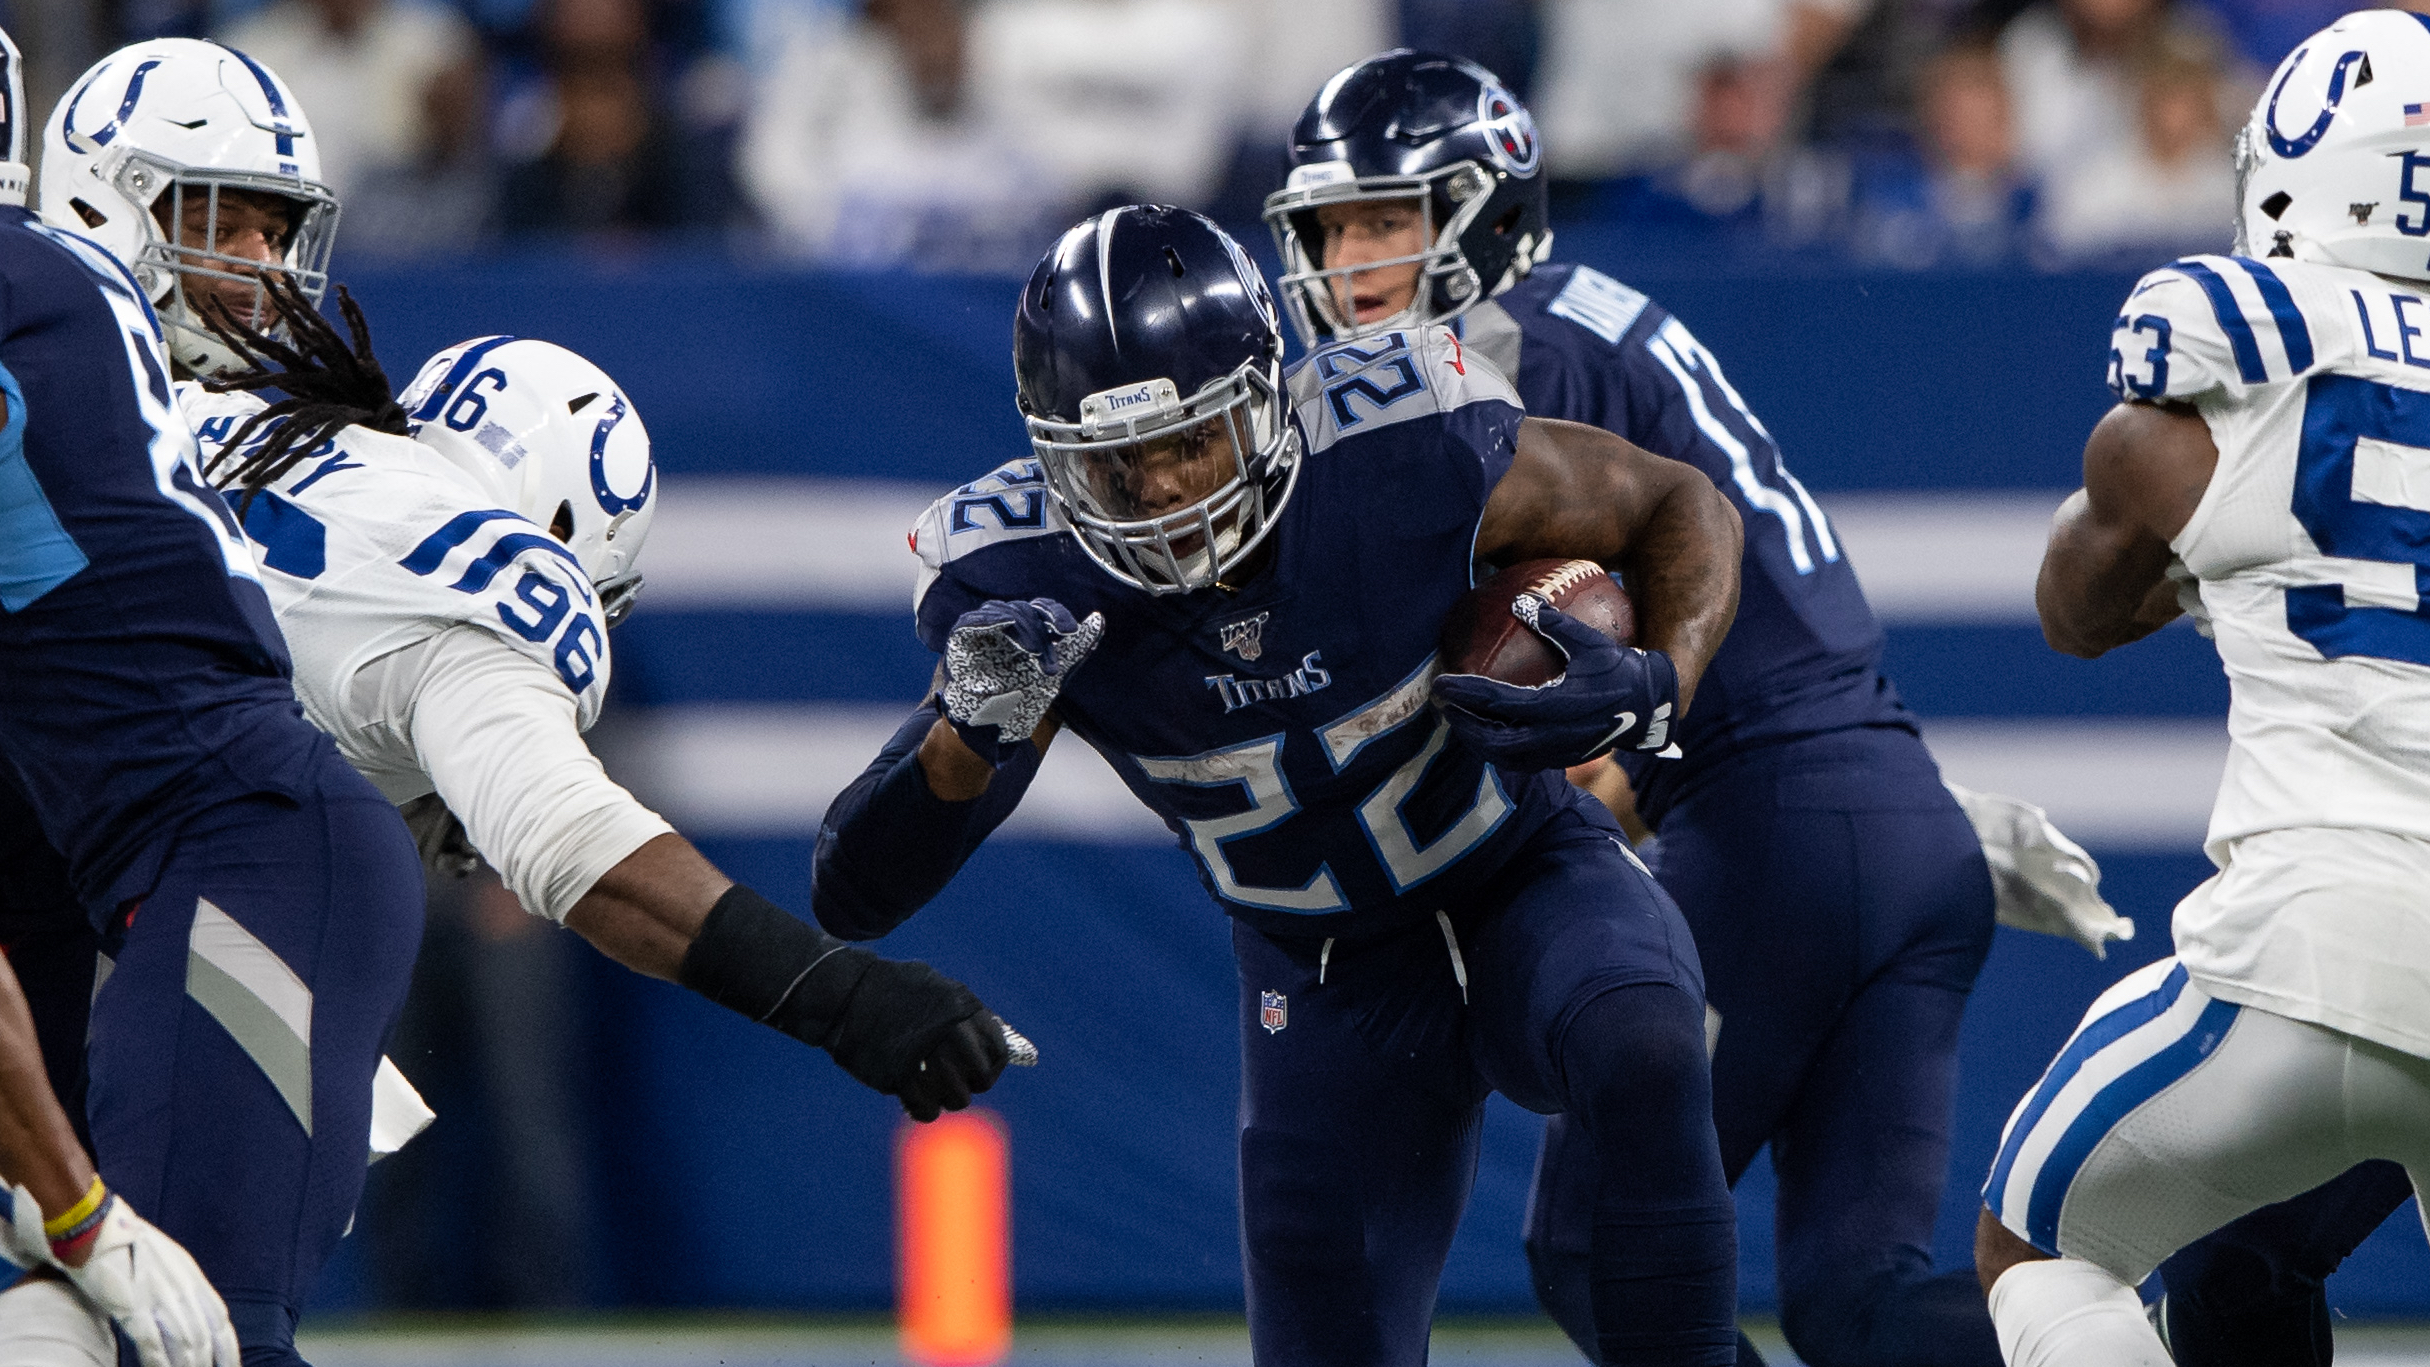 Colts vs. Titans Odds & Promos: Bet $5, Win $100 if Either Team Covers +50, More! article feature image